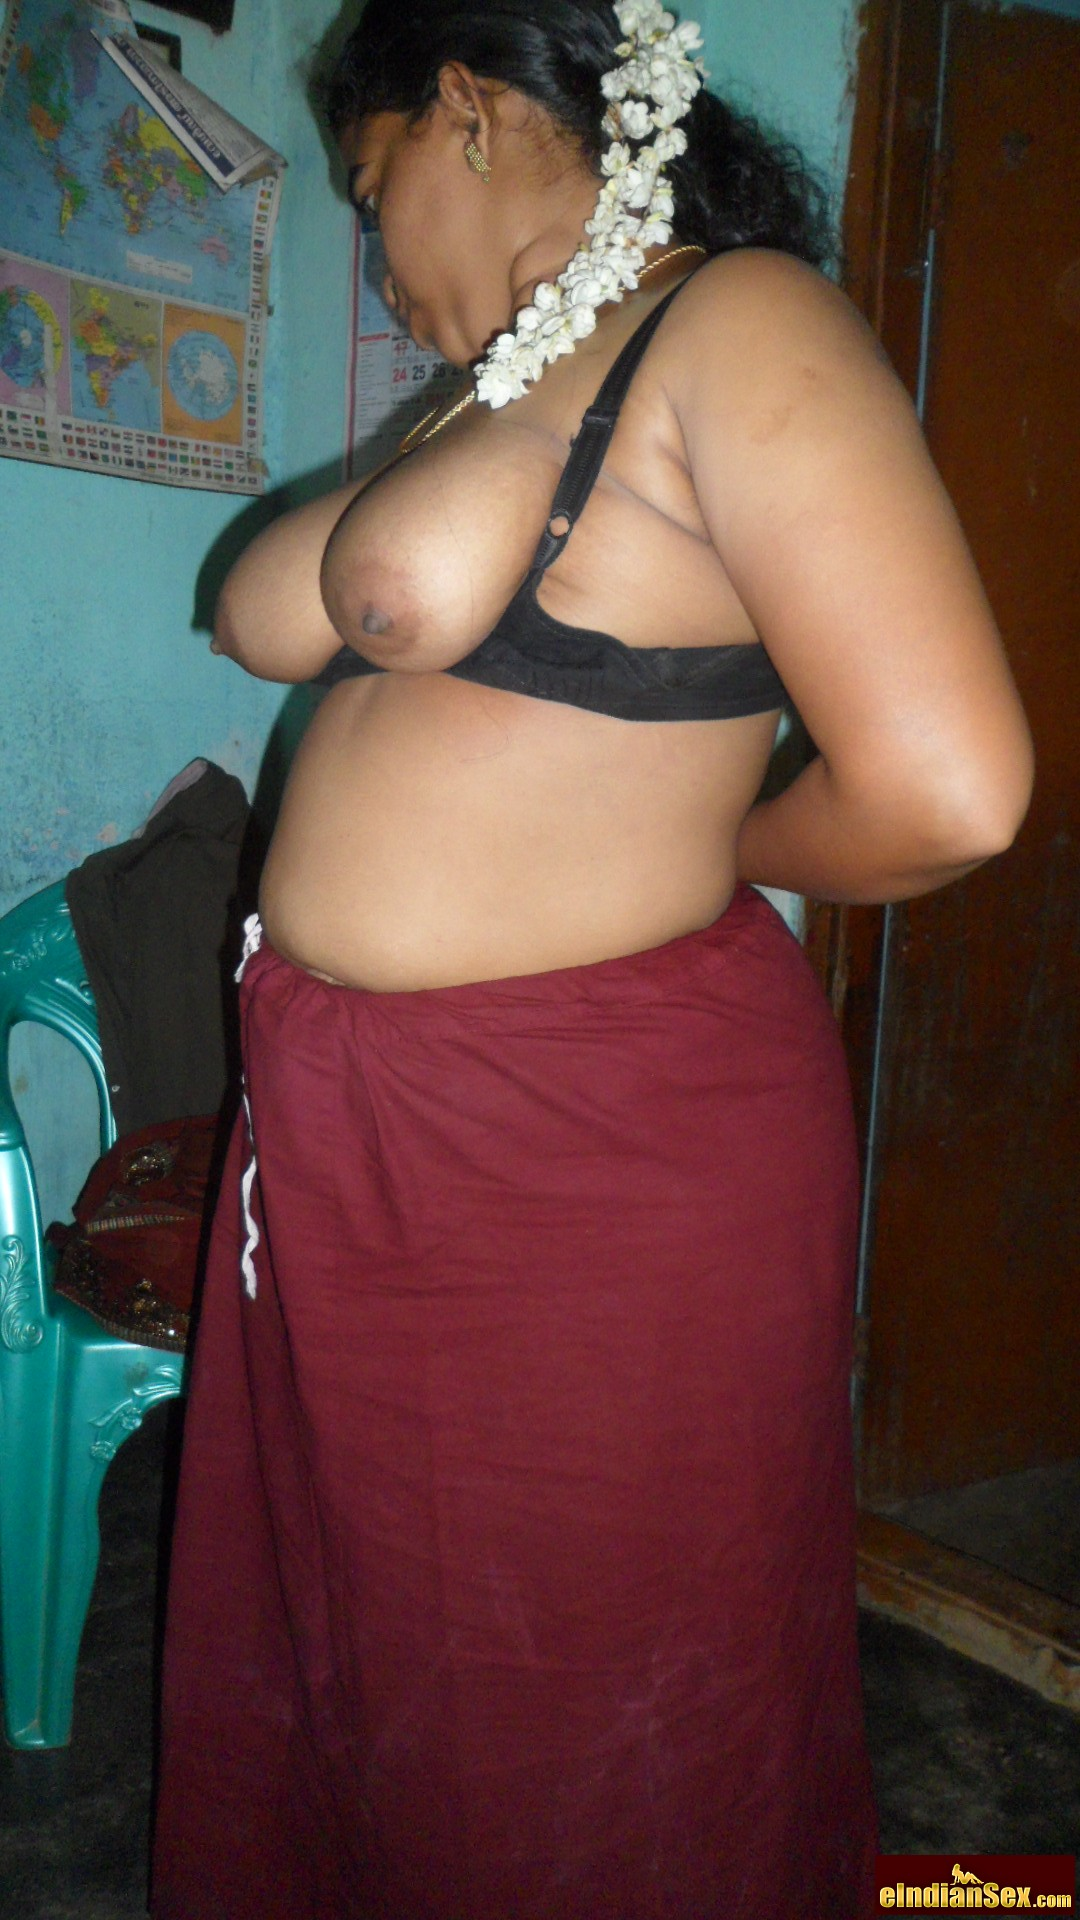 Indian Grandpa Tumblr Naked Photo-8476